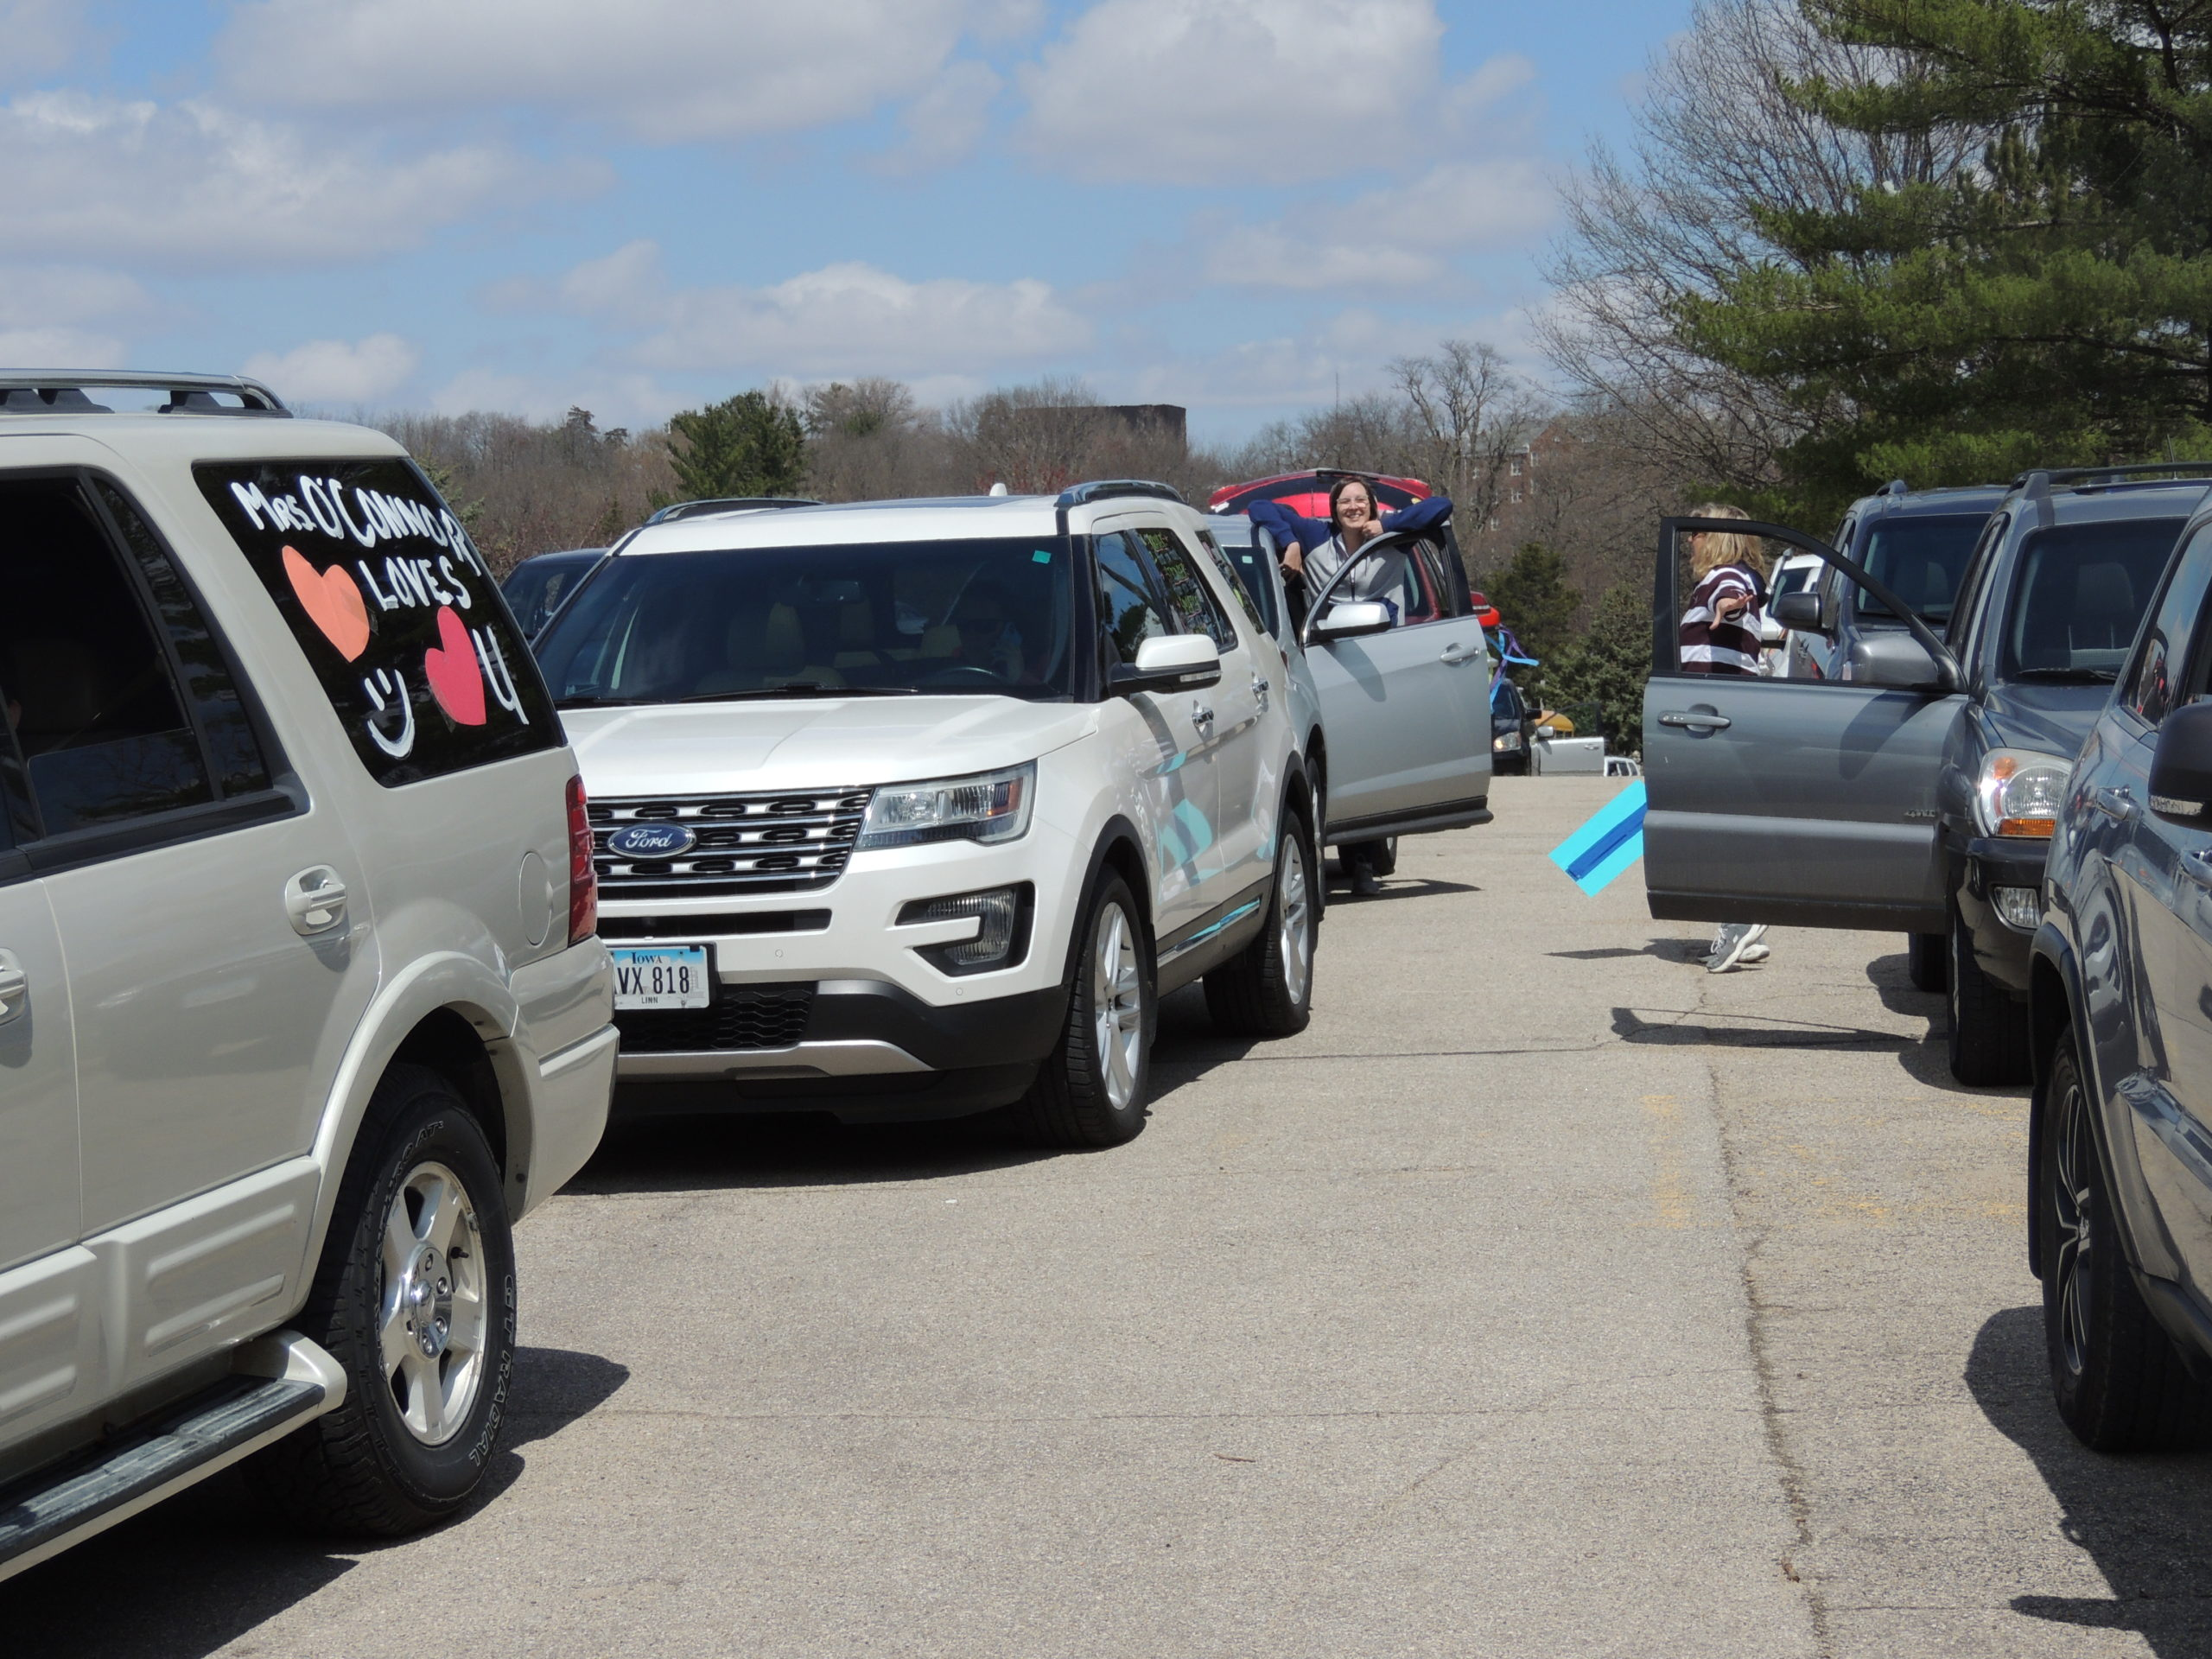 Photo of cars lined up for a parade